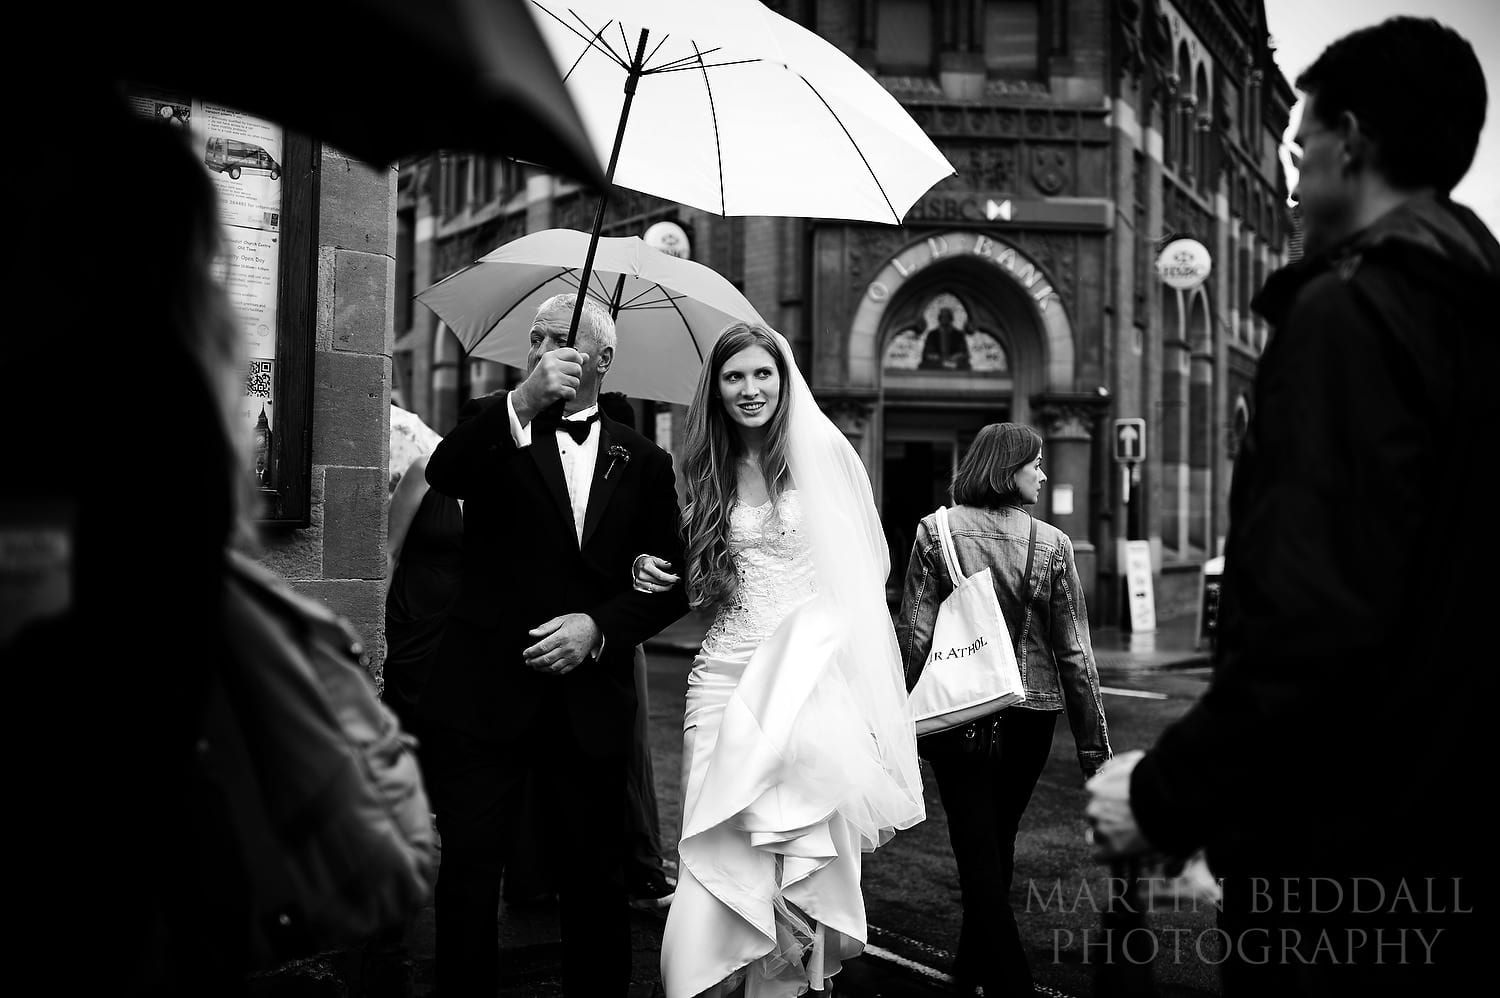 Walking to the wedding ceremony in the rain